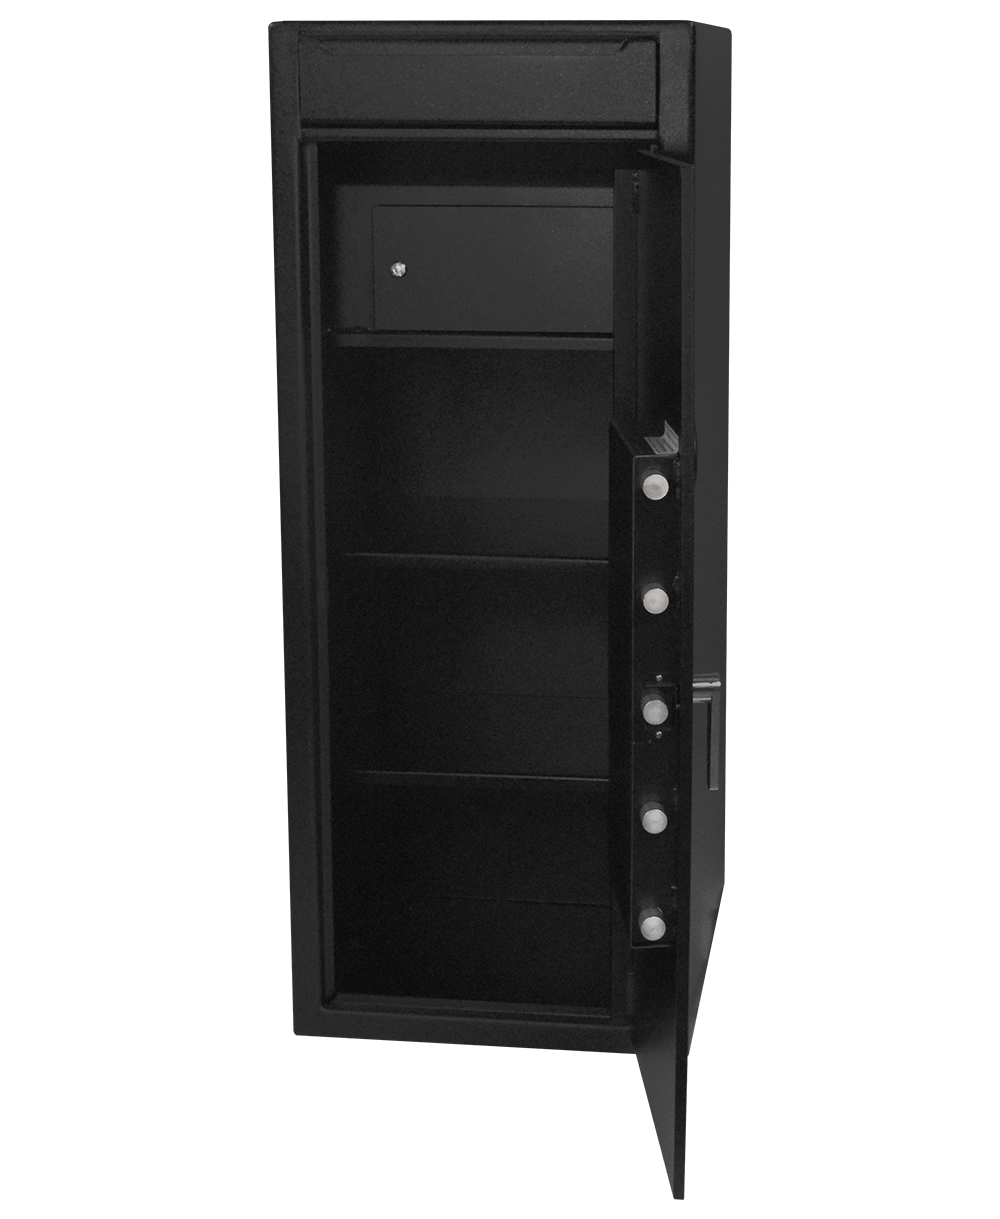 Stealth DS5020 Drop Safe 7 Gauge Door and Body with Solid Steel Locking Bolts